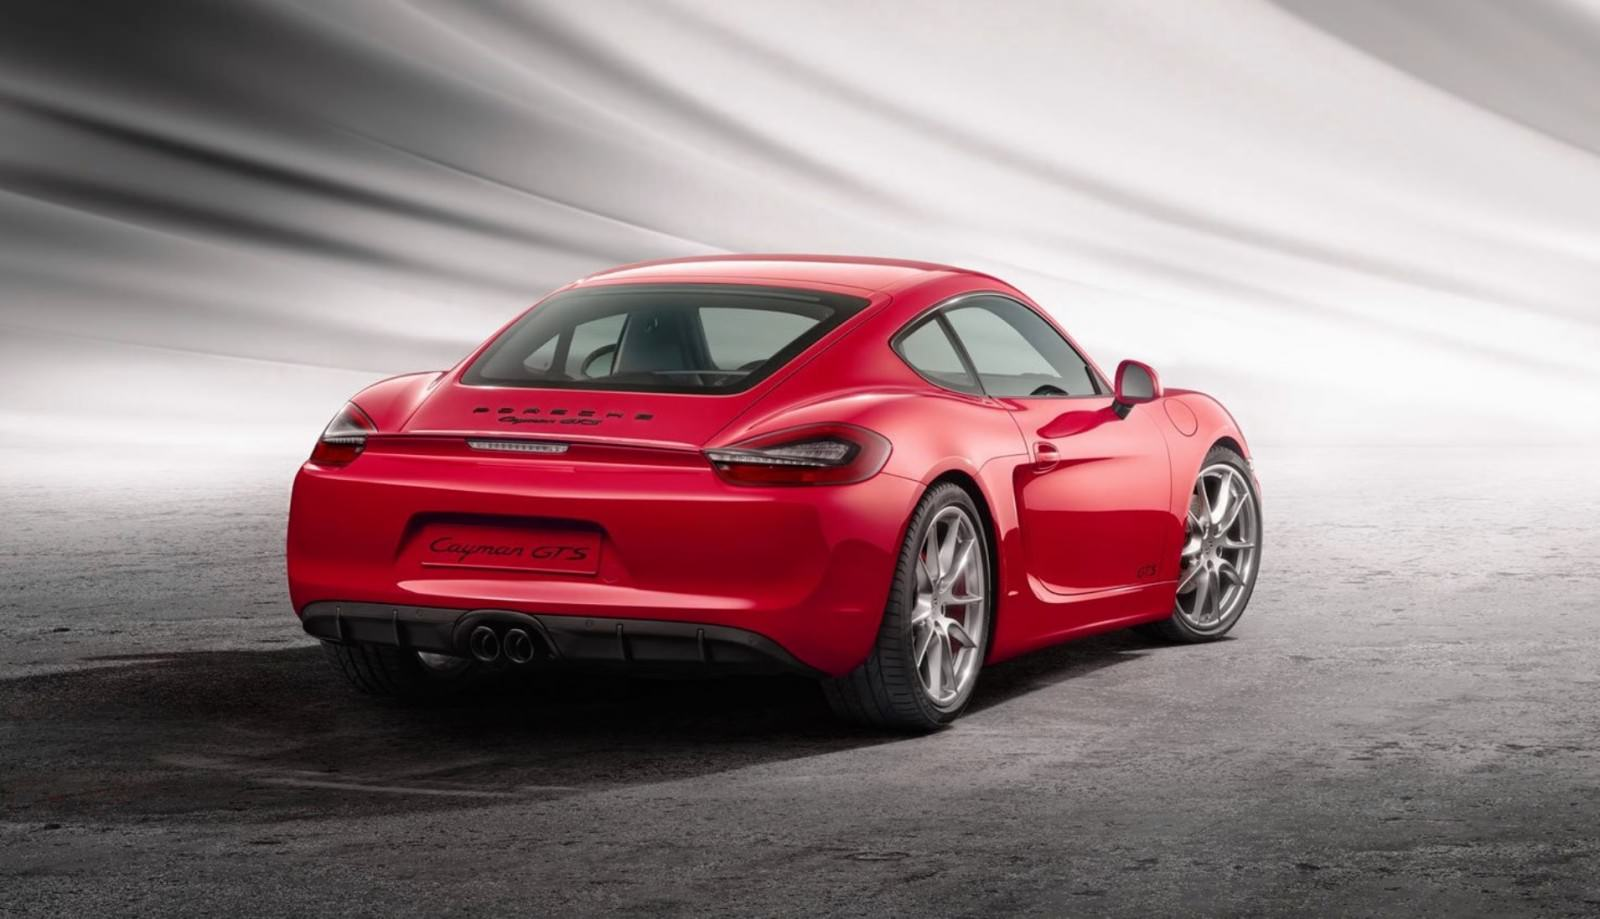 2015 Porsche Boxster and Cayman GTS 3